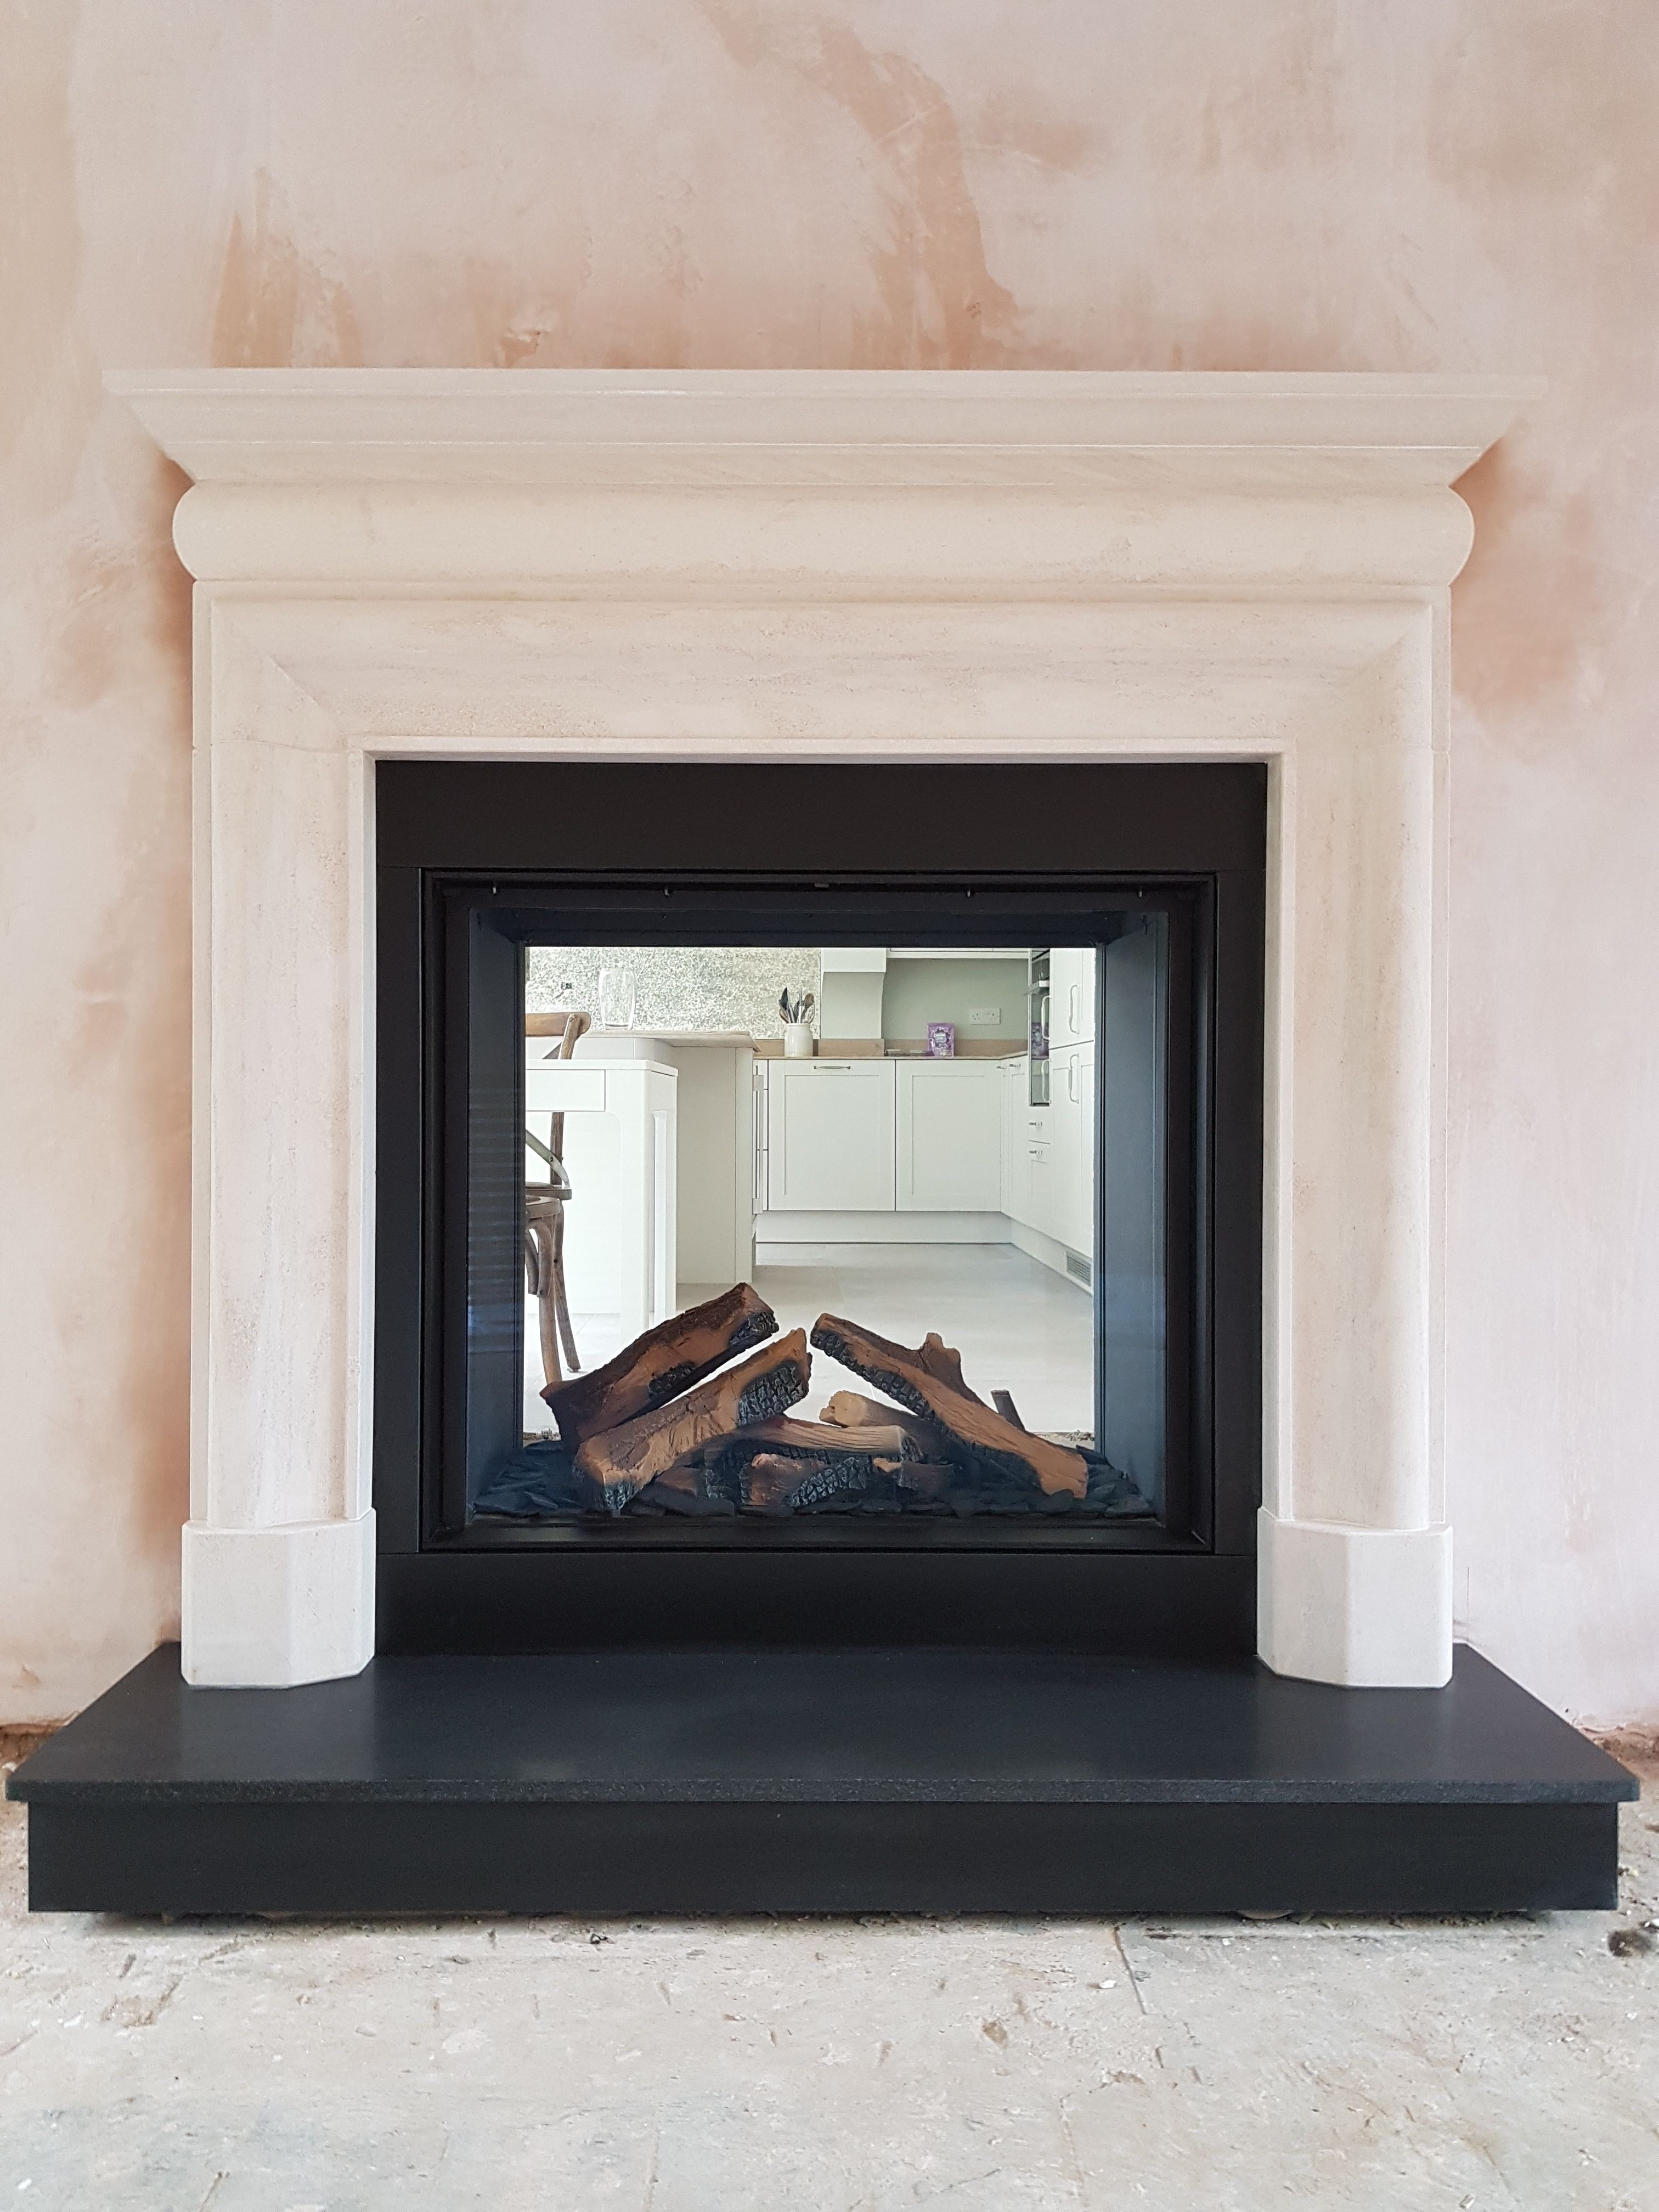 Dru Maestro 75 Tunnel Eco Wave Gas Fire Lounge Side With A 54 Capital Mullholland Surround In Corinthian Wood Burning Stove Honed Granite Multi Fuel Stove